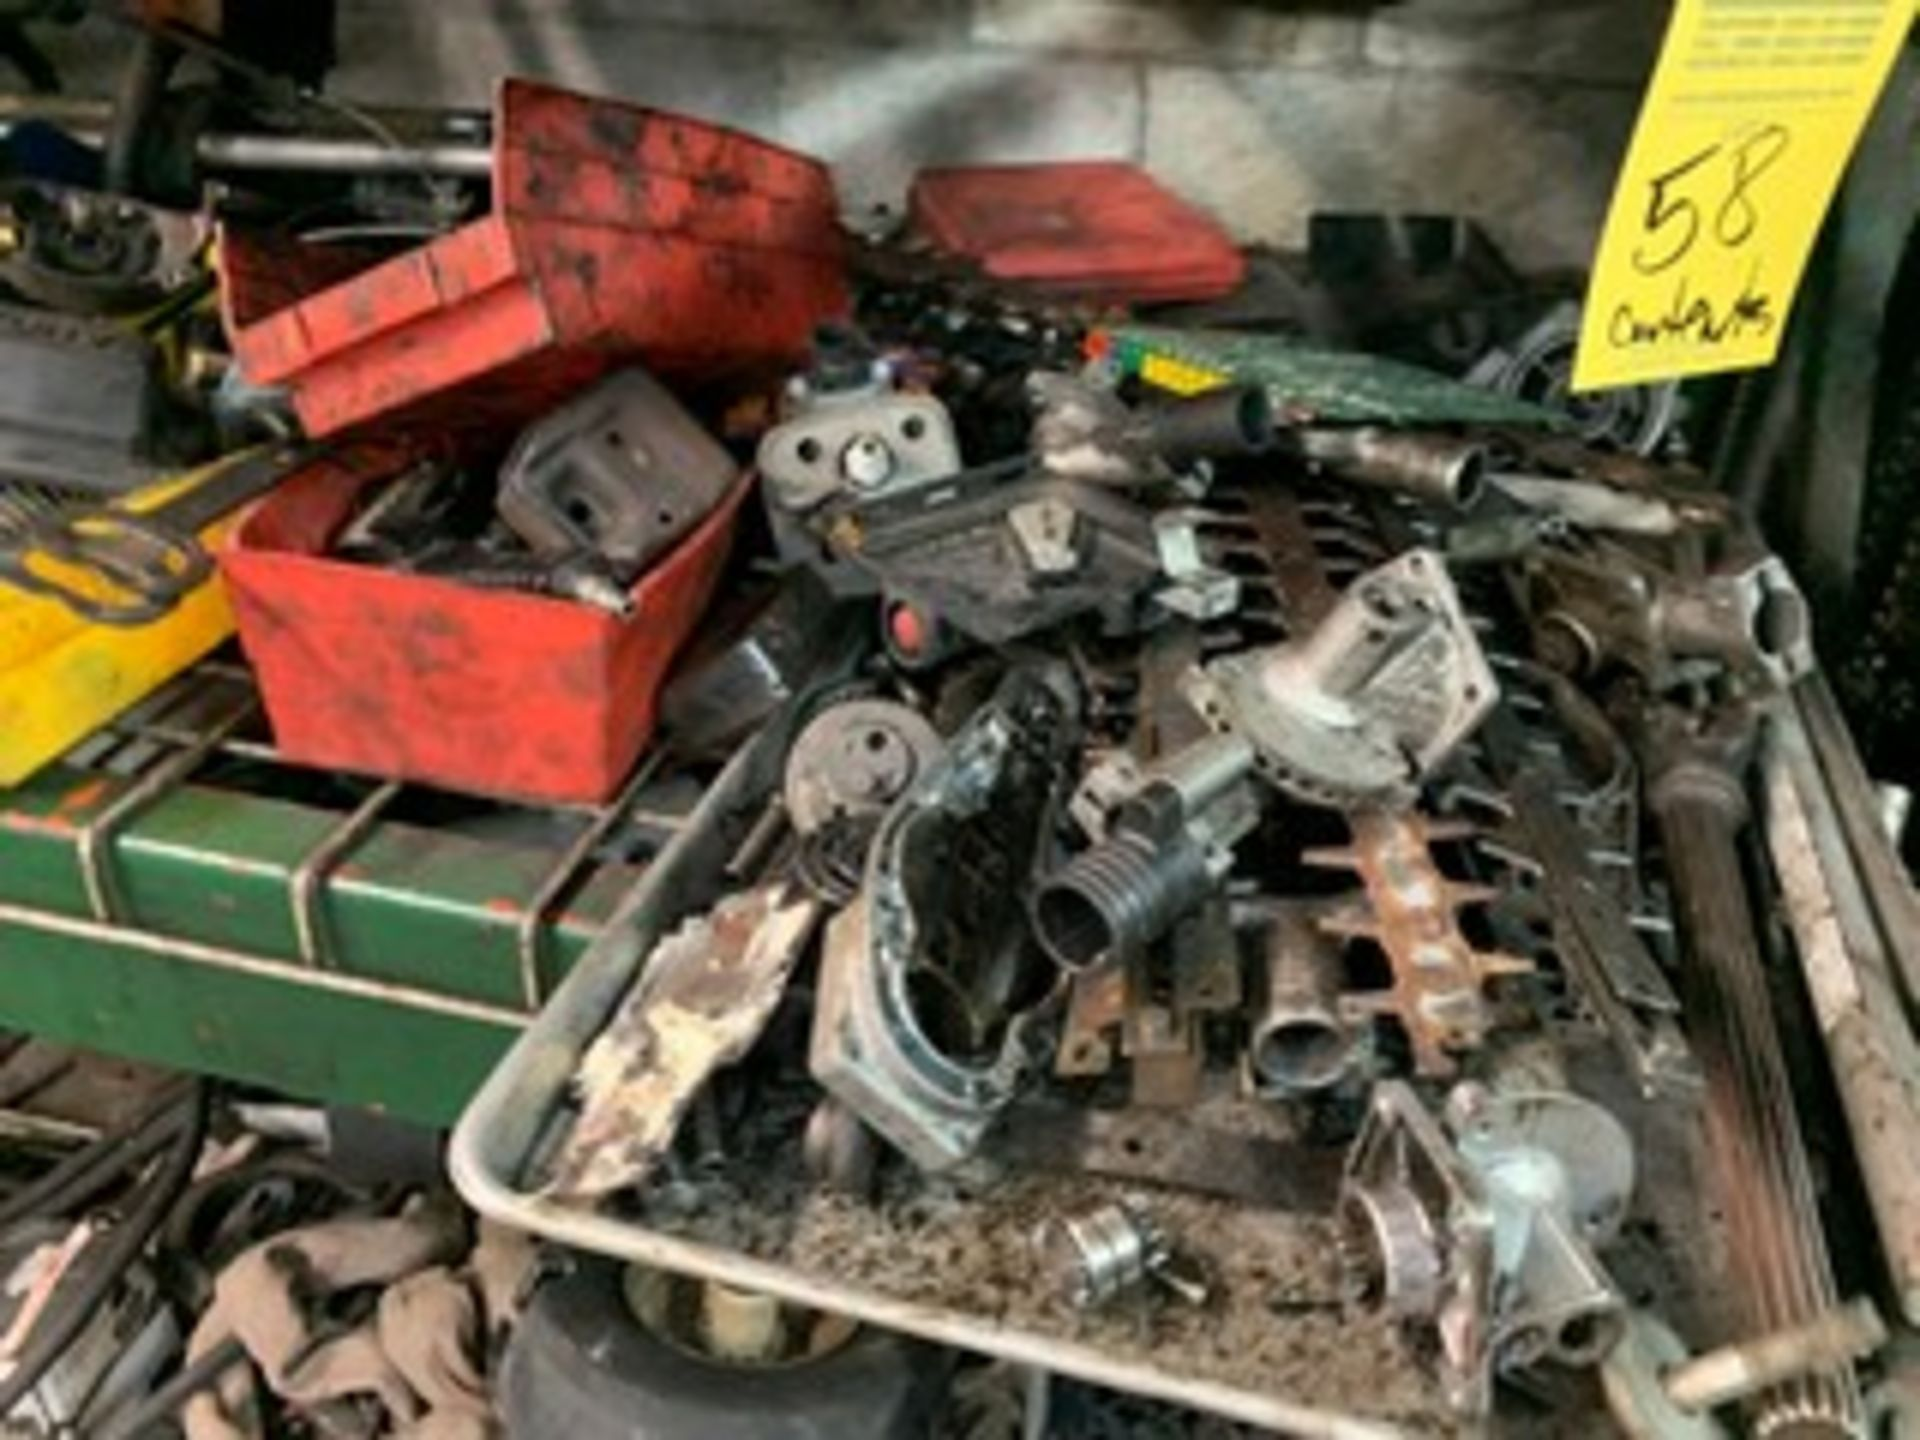 Lot 58 - LOT ASSORTED MOWER, BLOWER & WEEDEATER PARTS